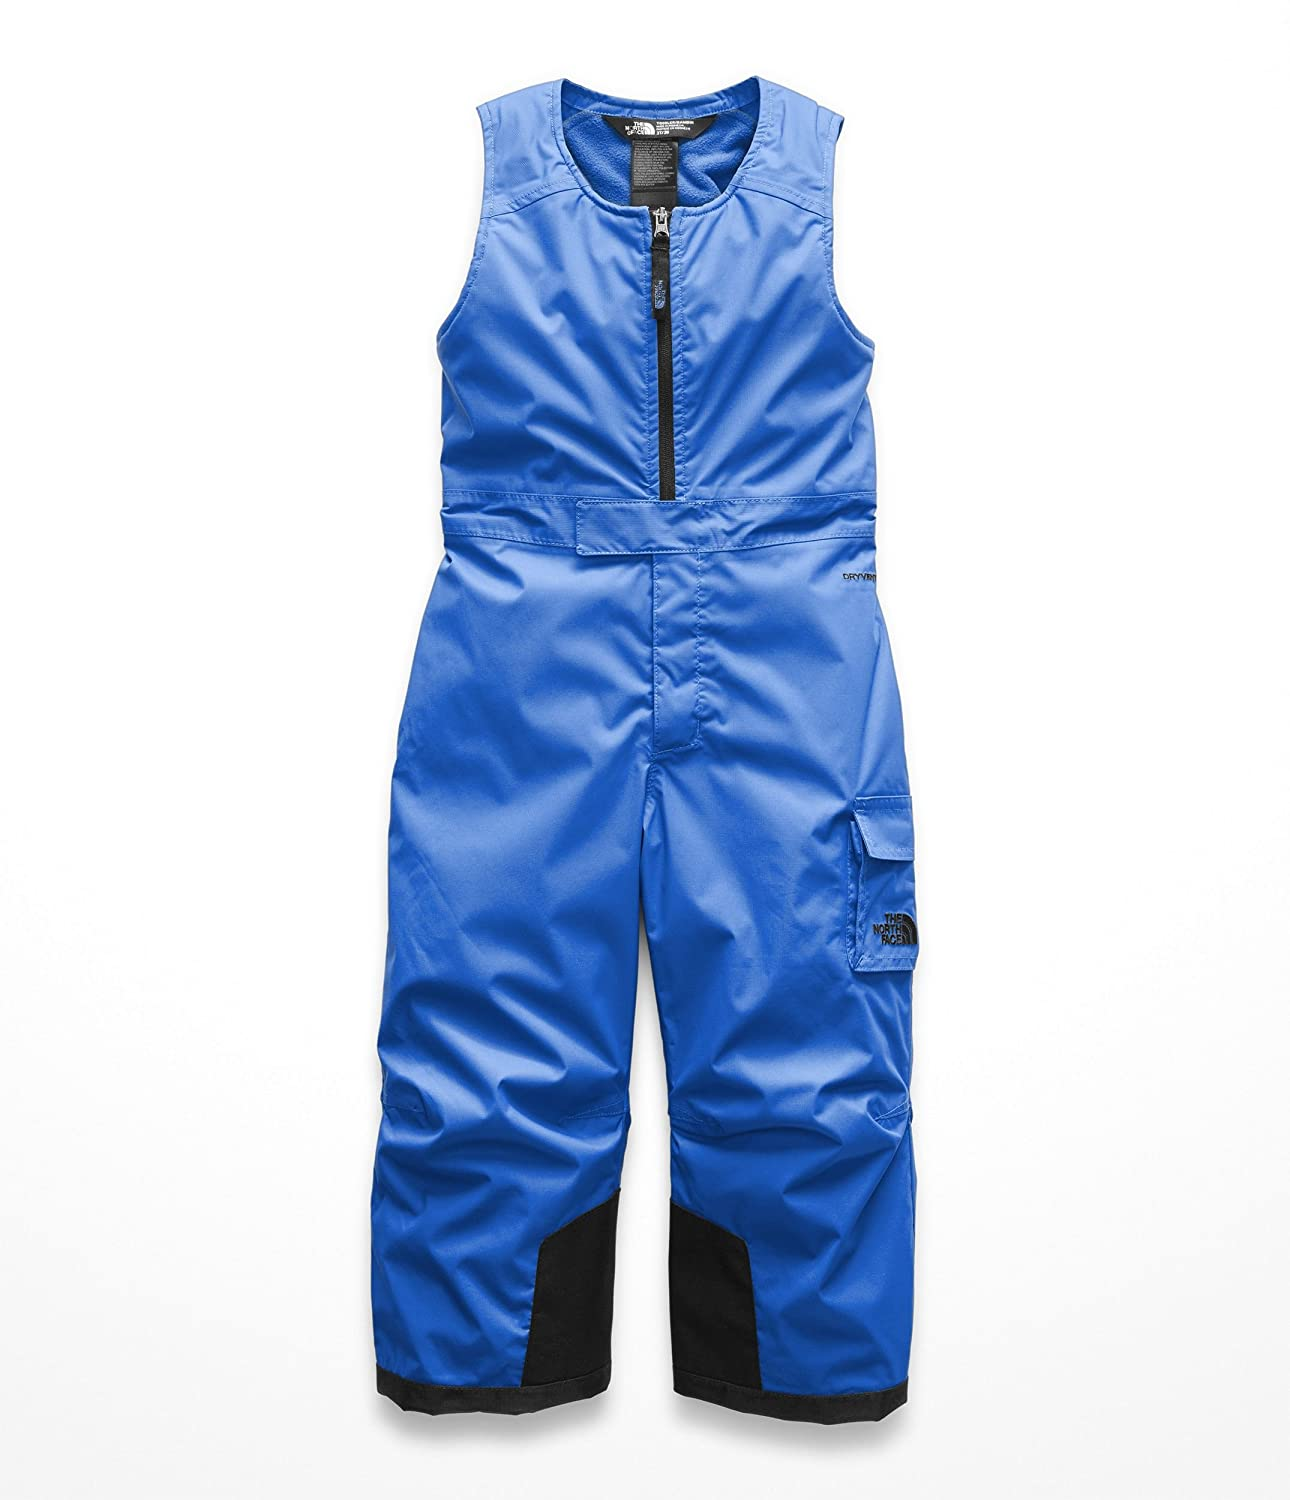 af5bfabcfb6d Amazon.com  The North Face Toddler Insulated Bib  Sports   Outdoors